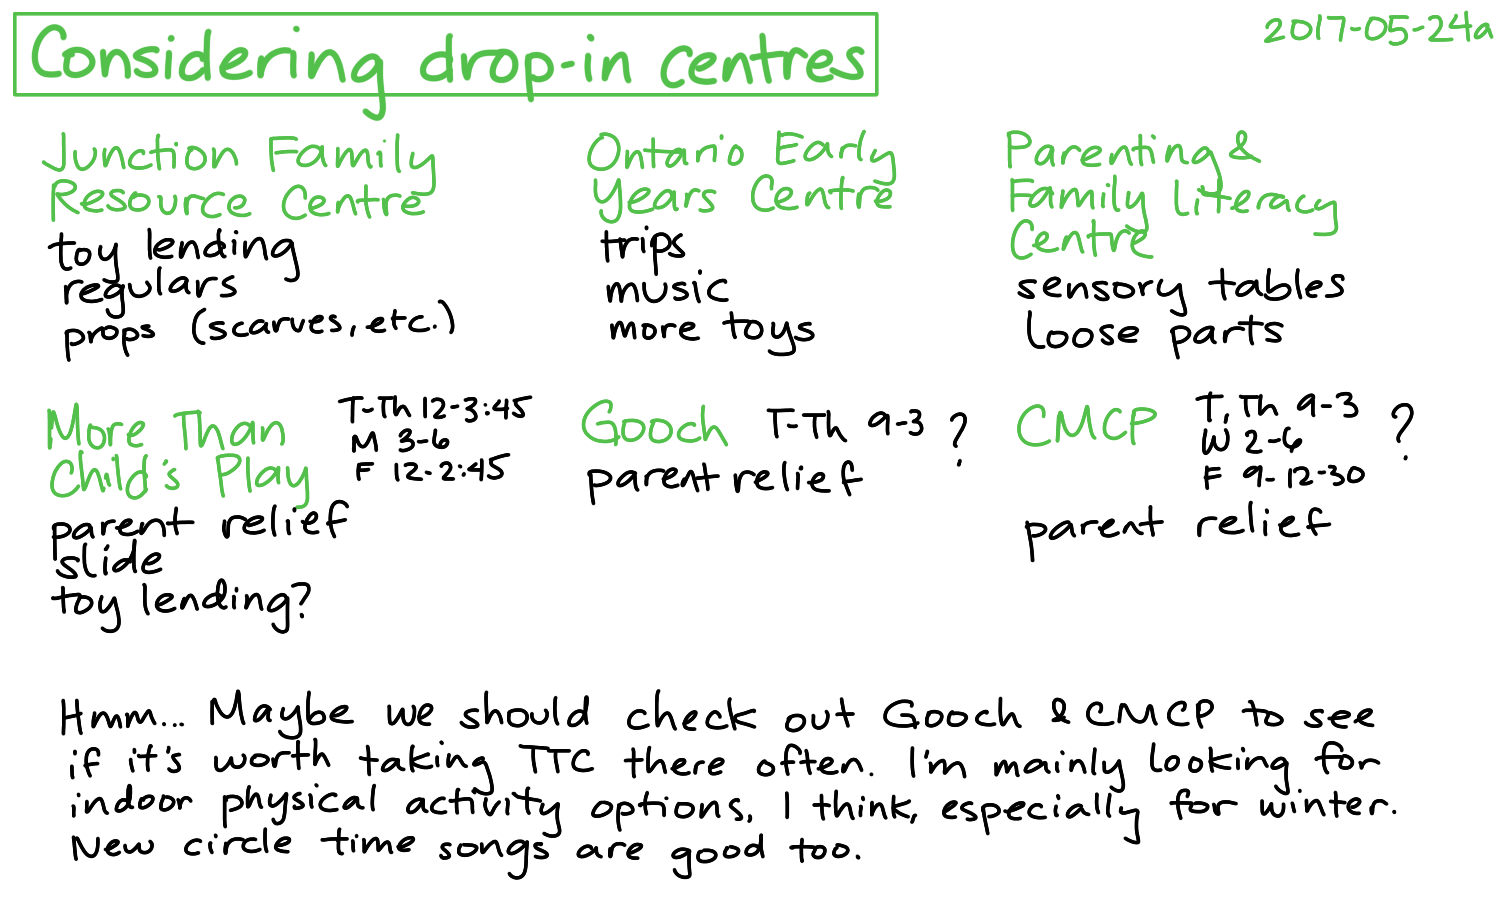 2017-05-24a Considering drop-in centres #parenting #activities #oeyc.png